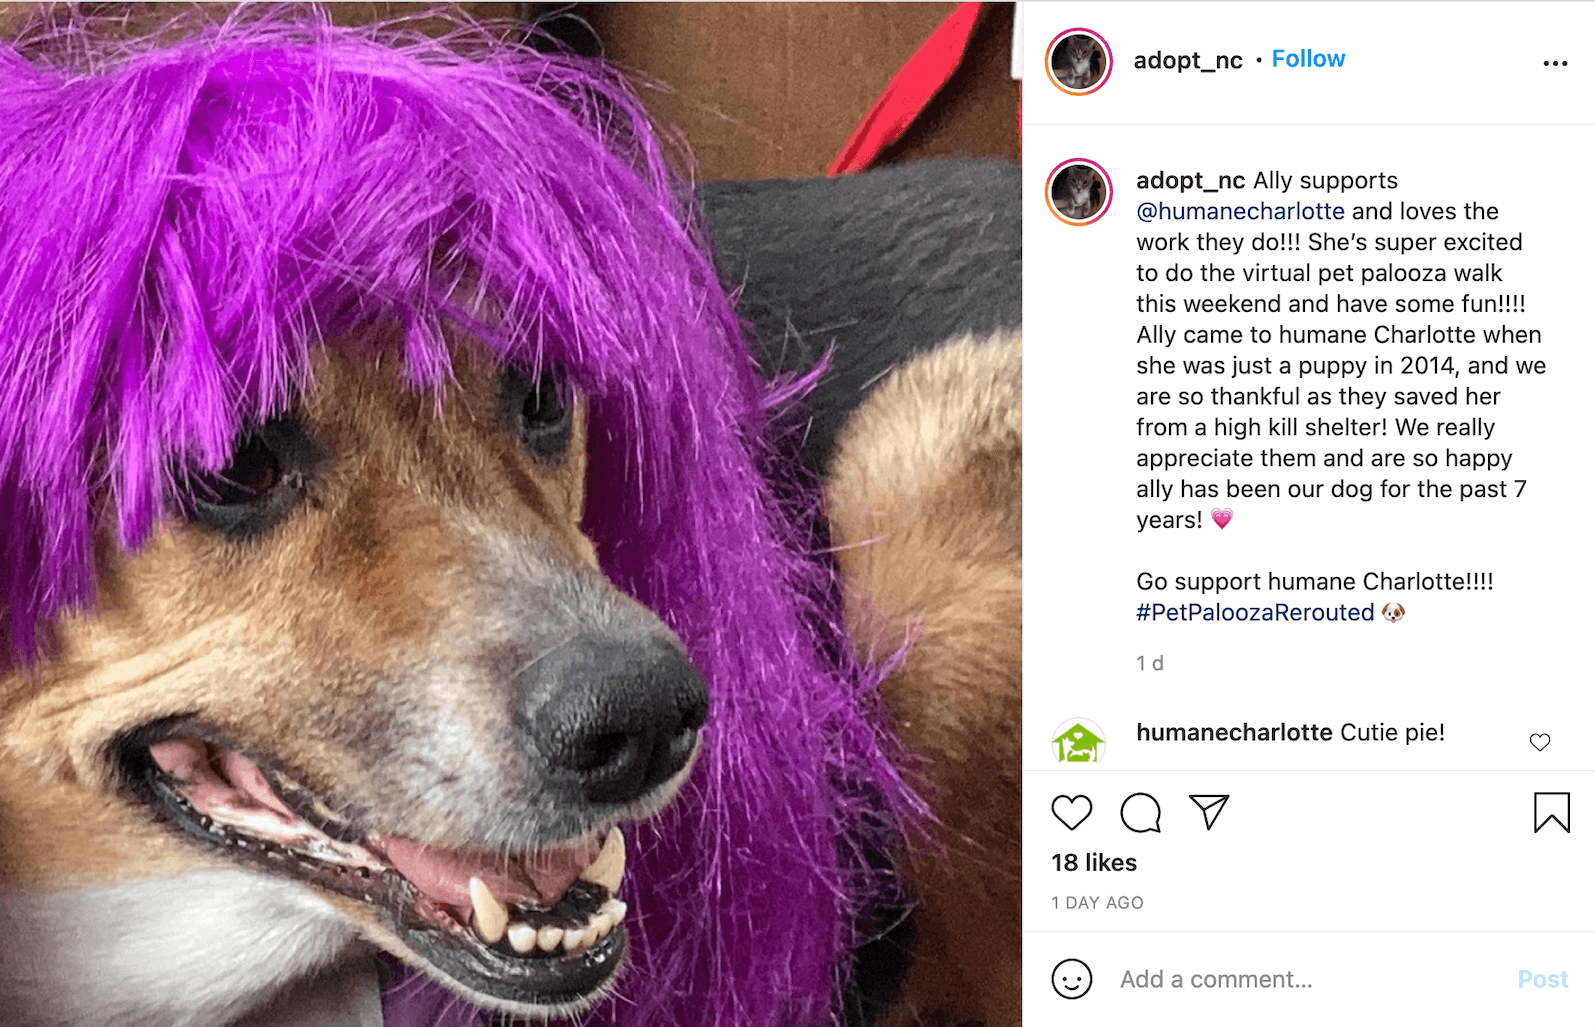 Screenshot of an Instagram post by @adopt_nc. The photo in the post shows the head of a sand-coloured dog with a purple wig on their head. The caption reads:  Ally supports @humanecharlotte and loves the work they do!!! She's super excited to do the virtual pet palooza walk this weekend and have some fun!!!! Ally came to humane Charlotte when she was just a puppy in 2014, and we are so thankful as they saved her from a high kill shelter! We really appreciate them and are so happy ally has been our dog for the past 7 years! 💗  Go support humane Charlotte!!!! #PetPaloozaRerouted 🐶